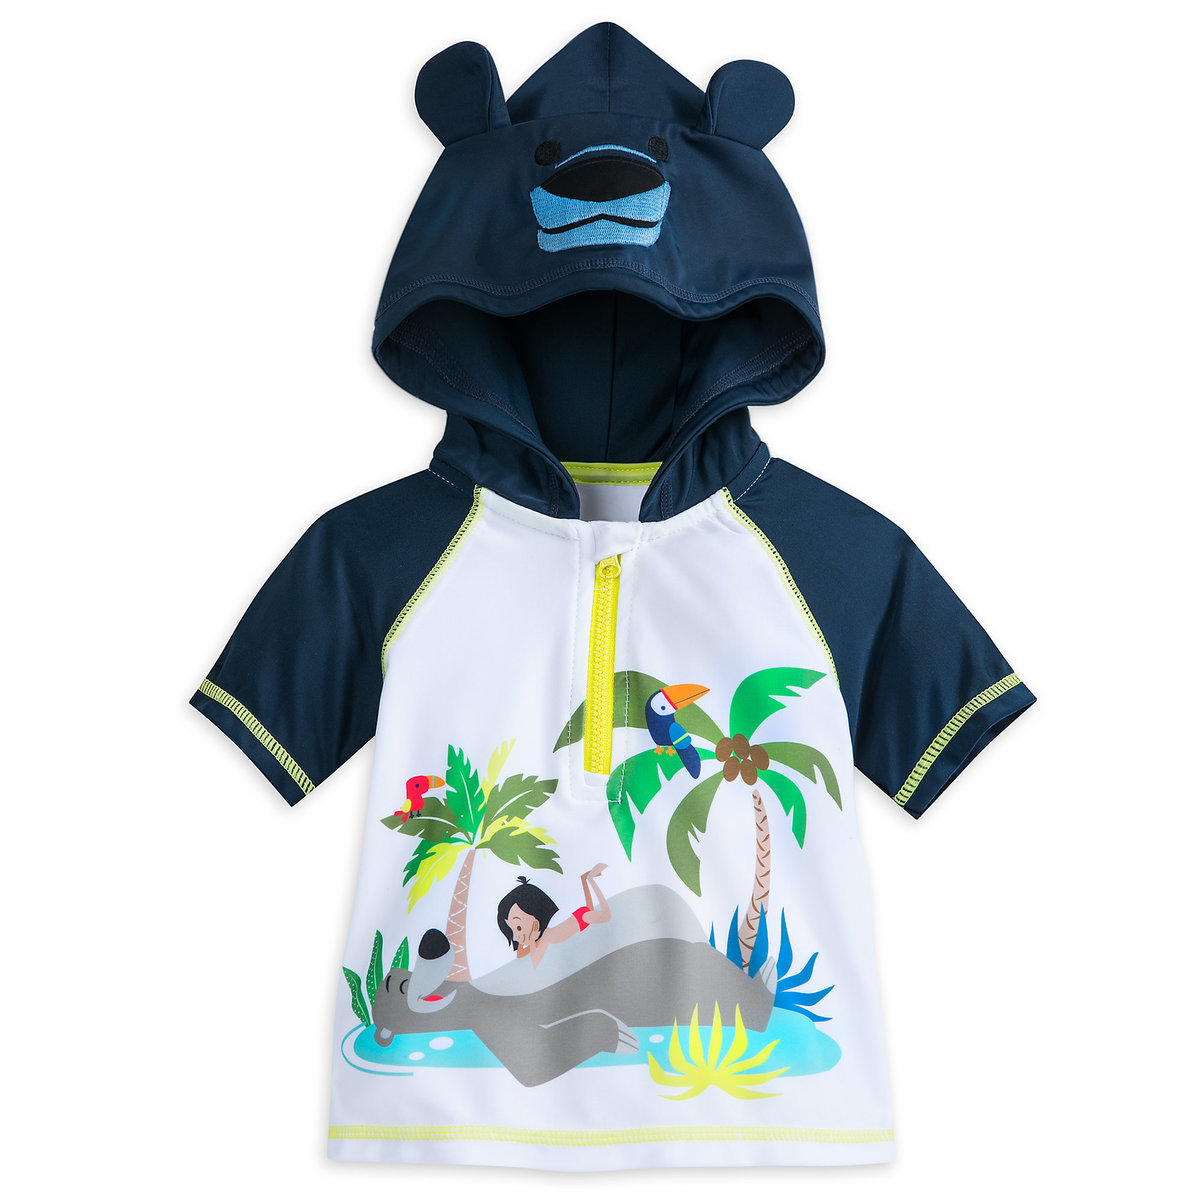 The Jungle Book Hooded Rash Guard For Baby Shopdisney